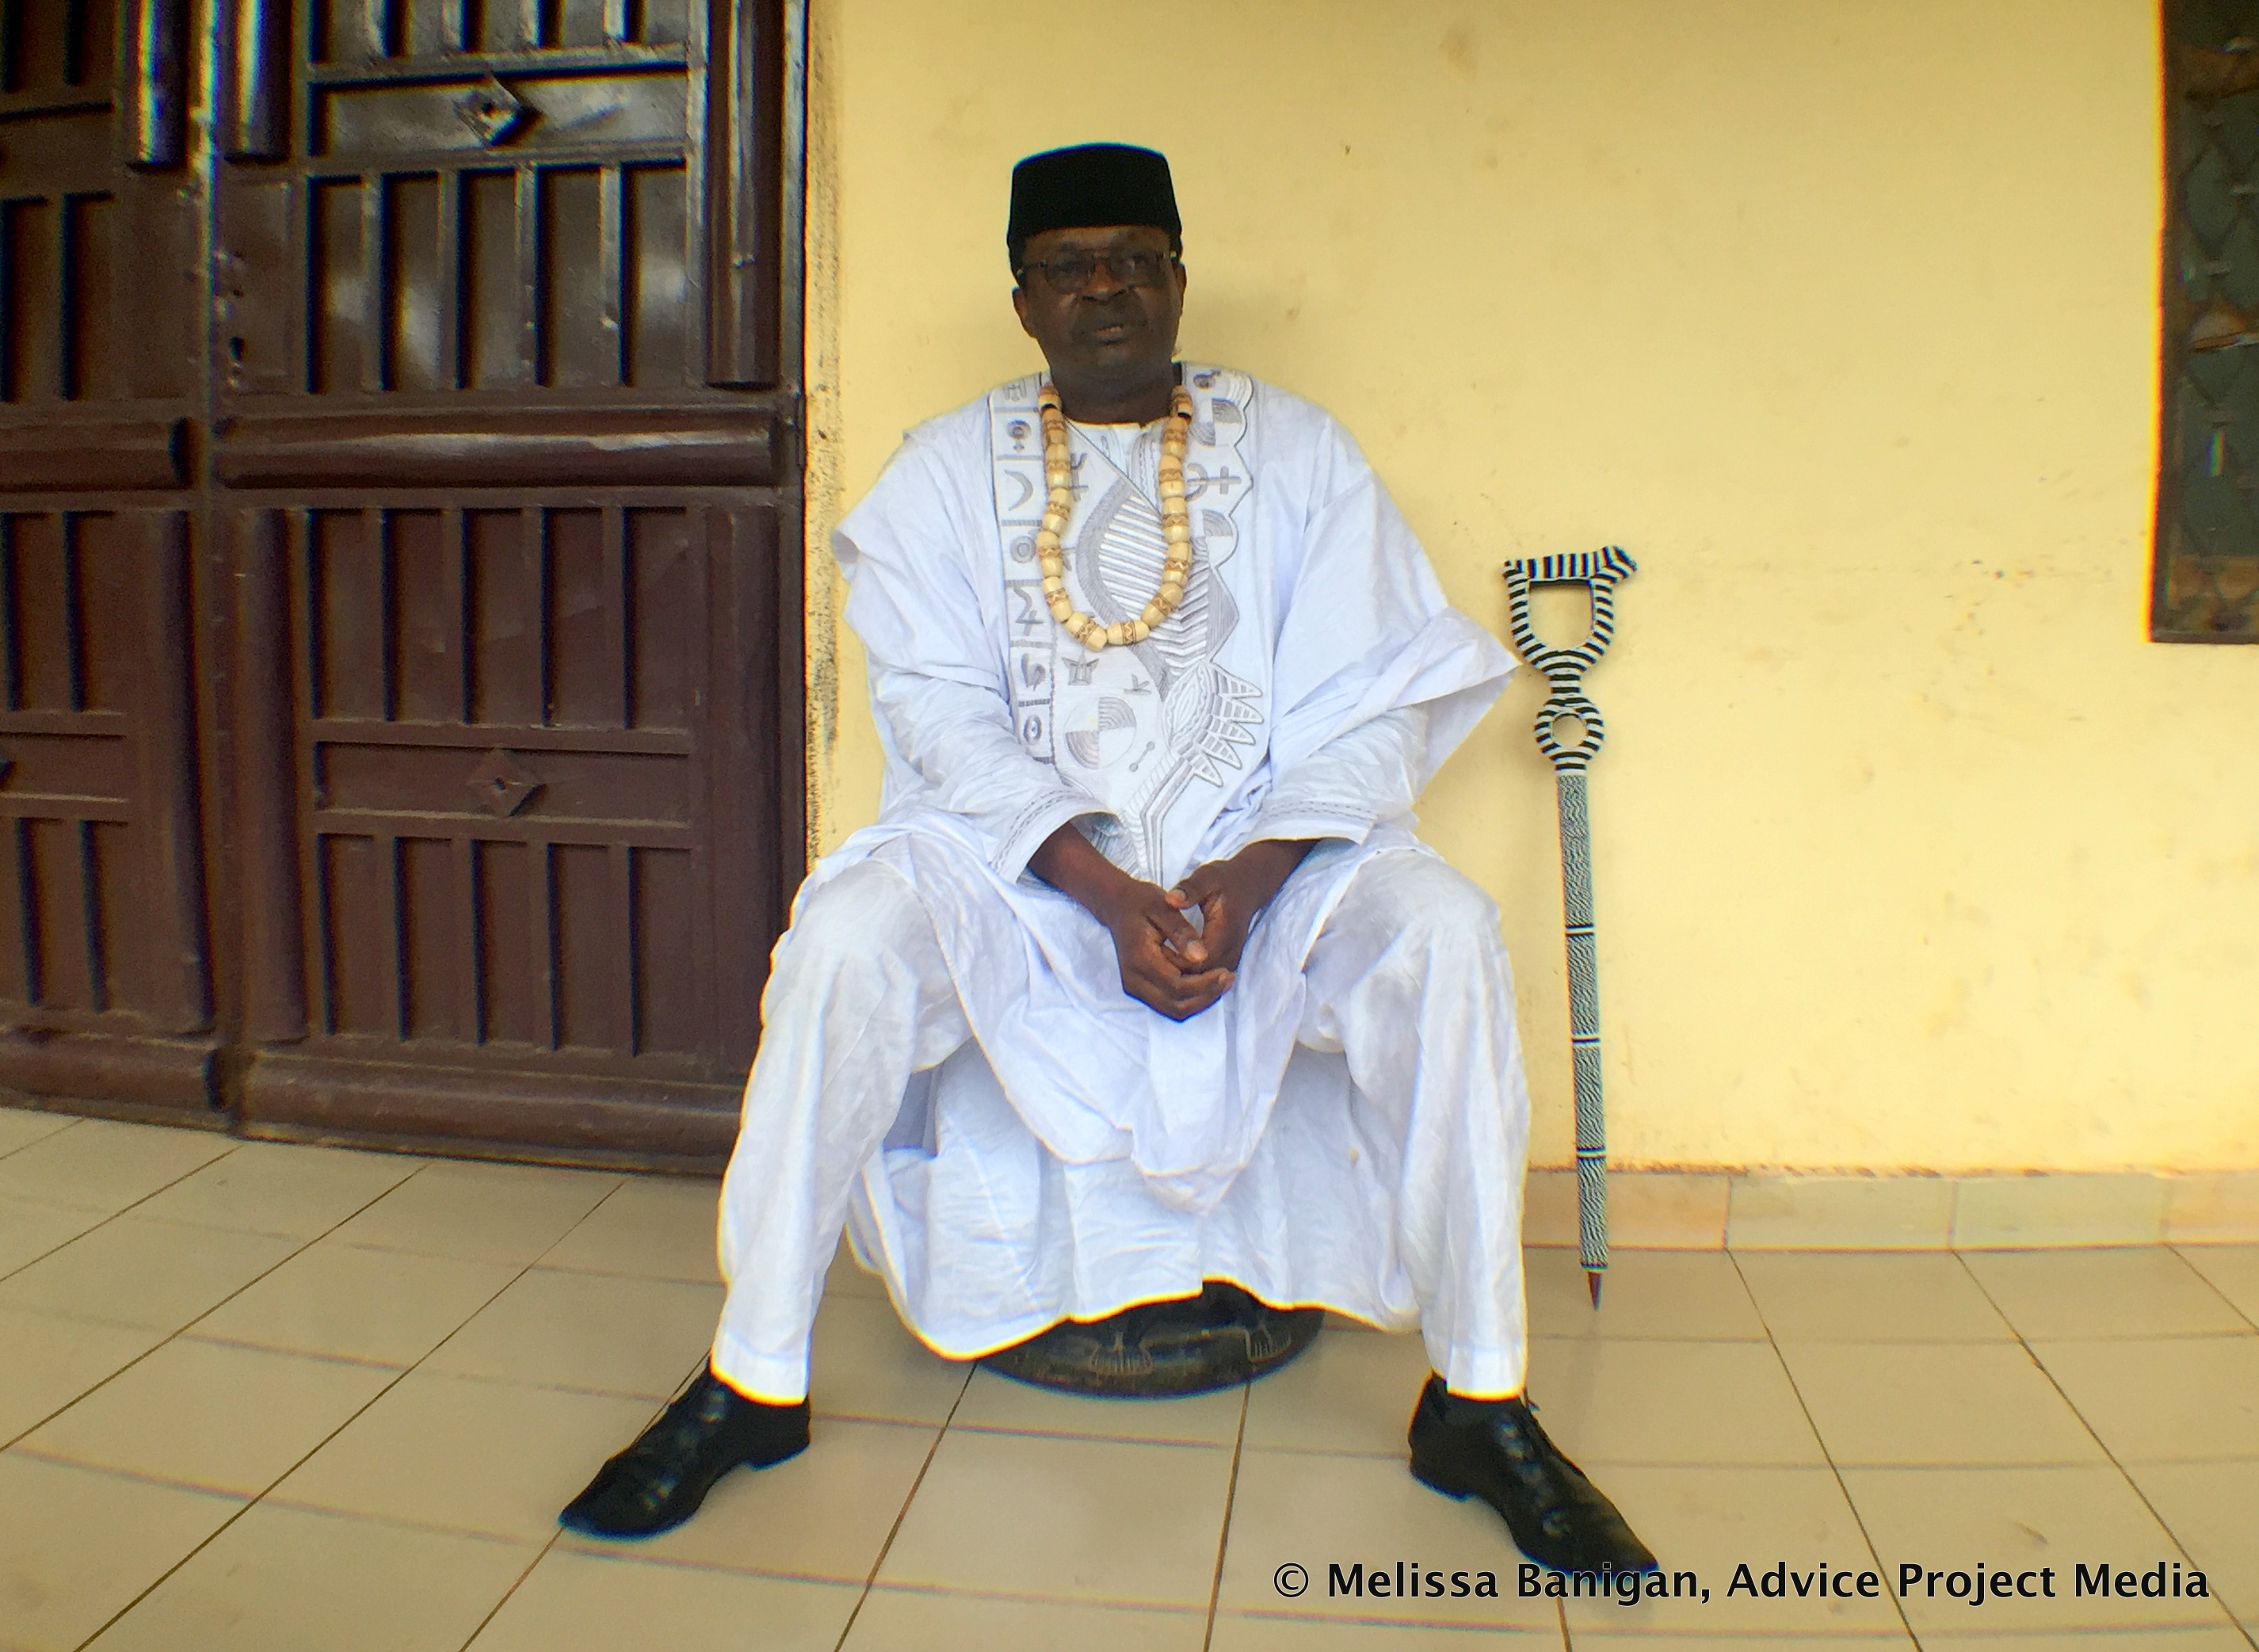 HRH the Fon of Bawock